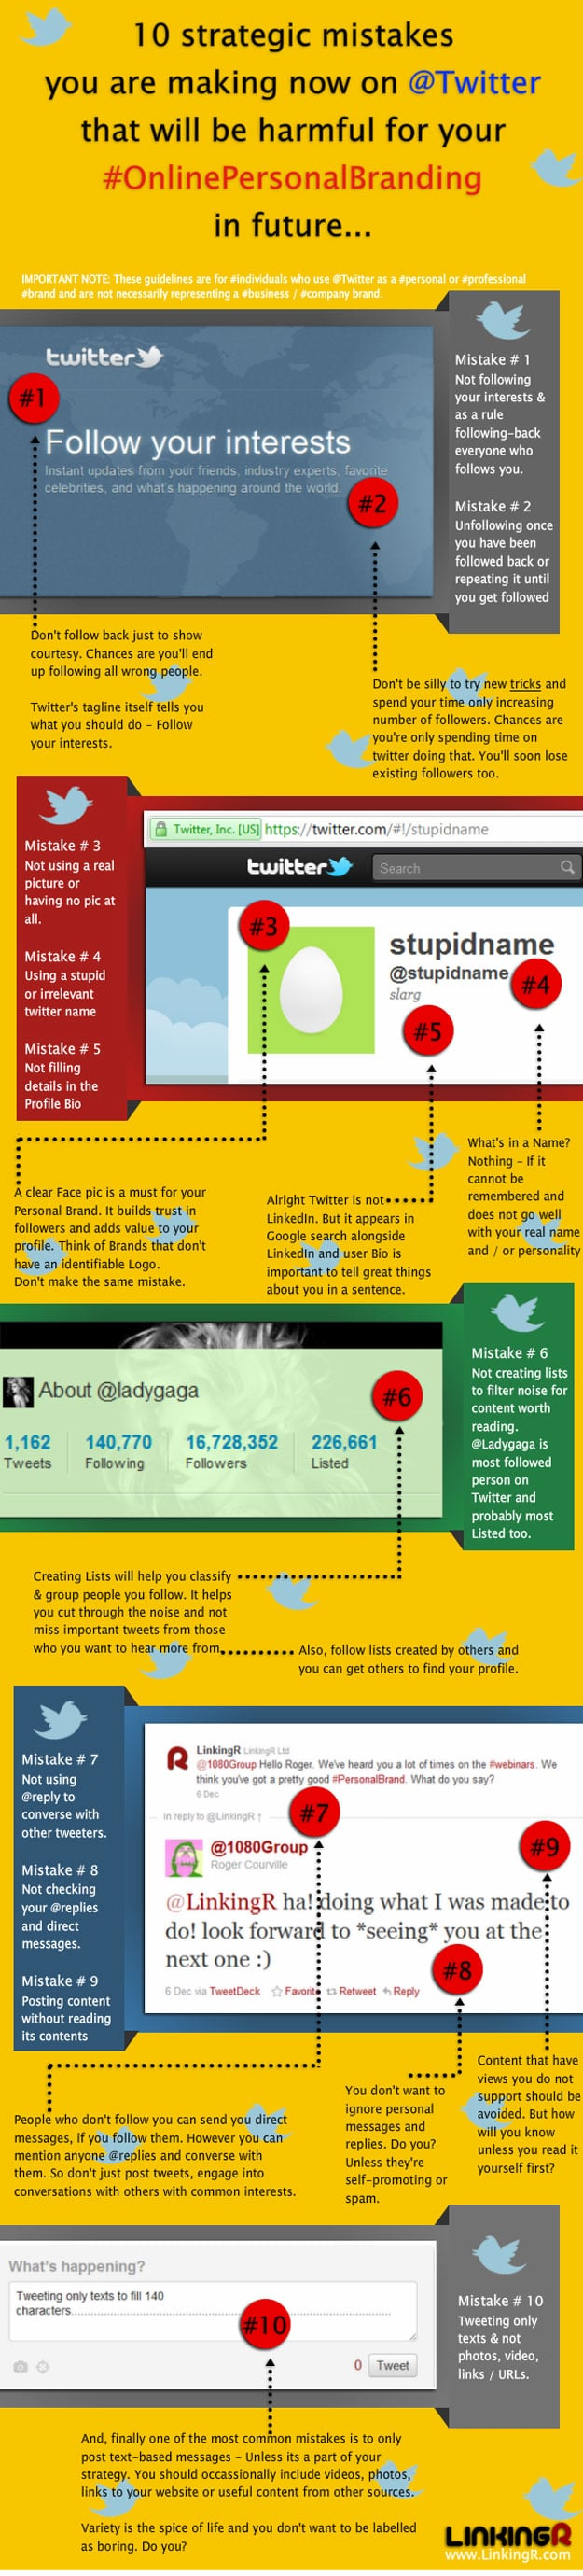 Twitter-Online-Branding-Mistakes-infographic